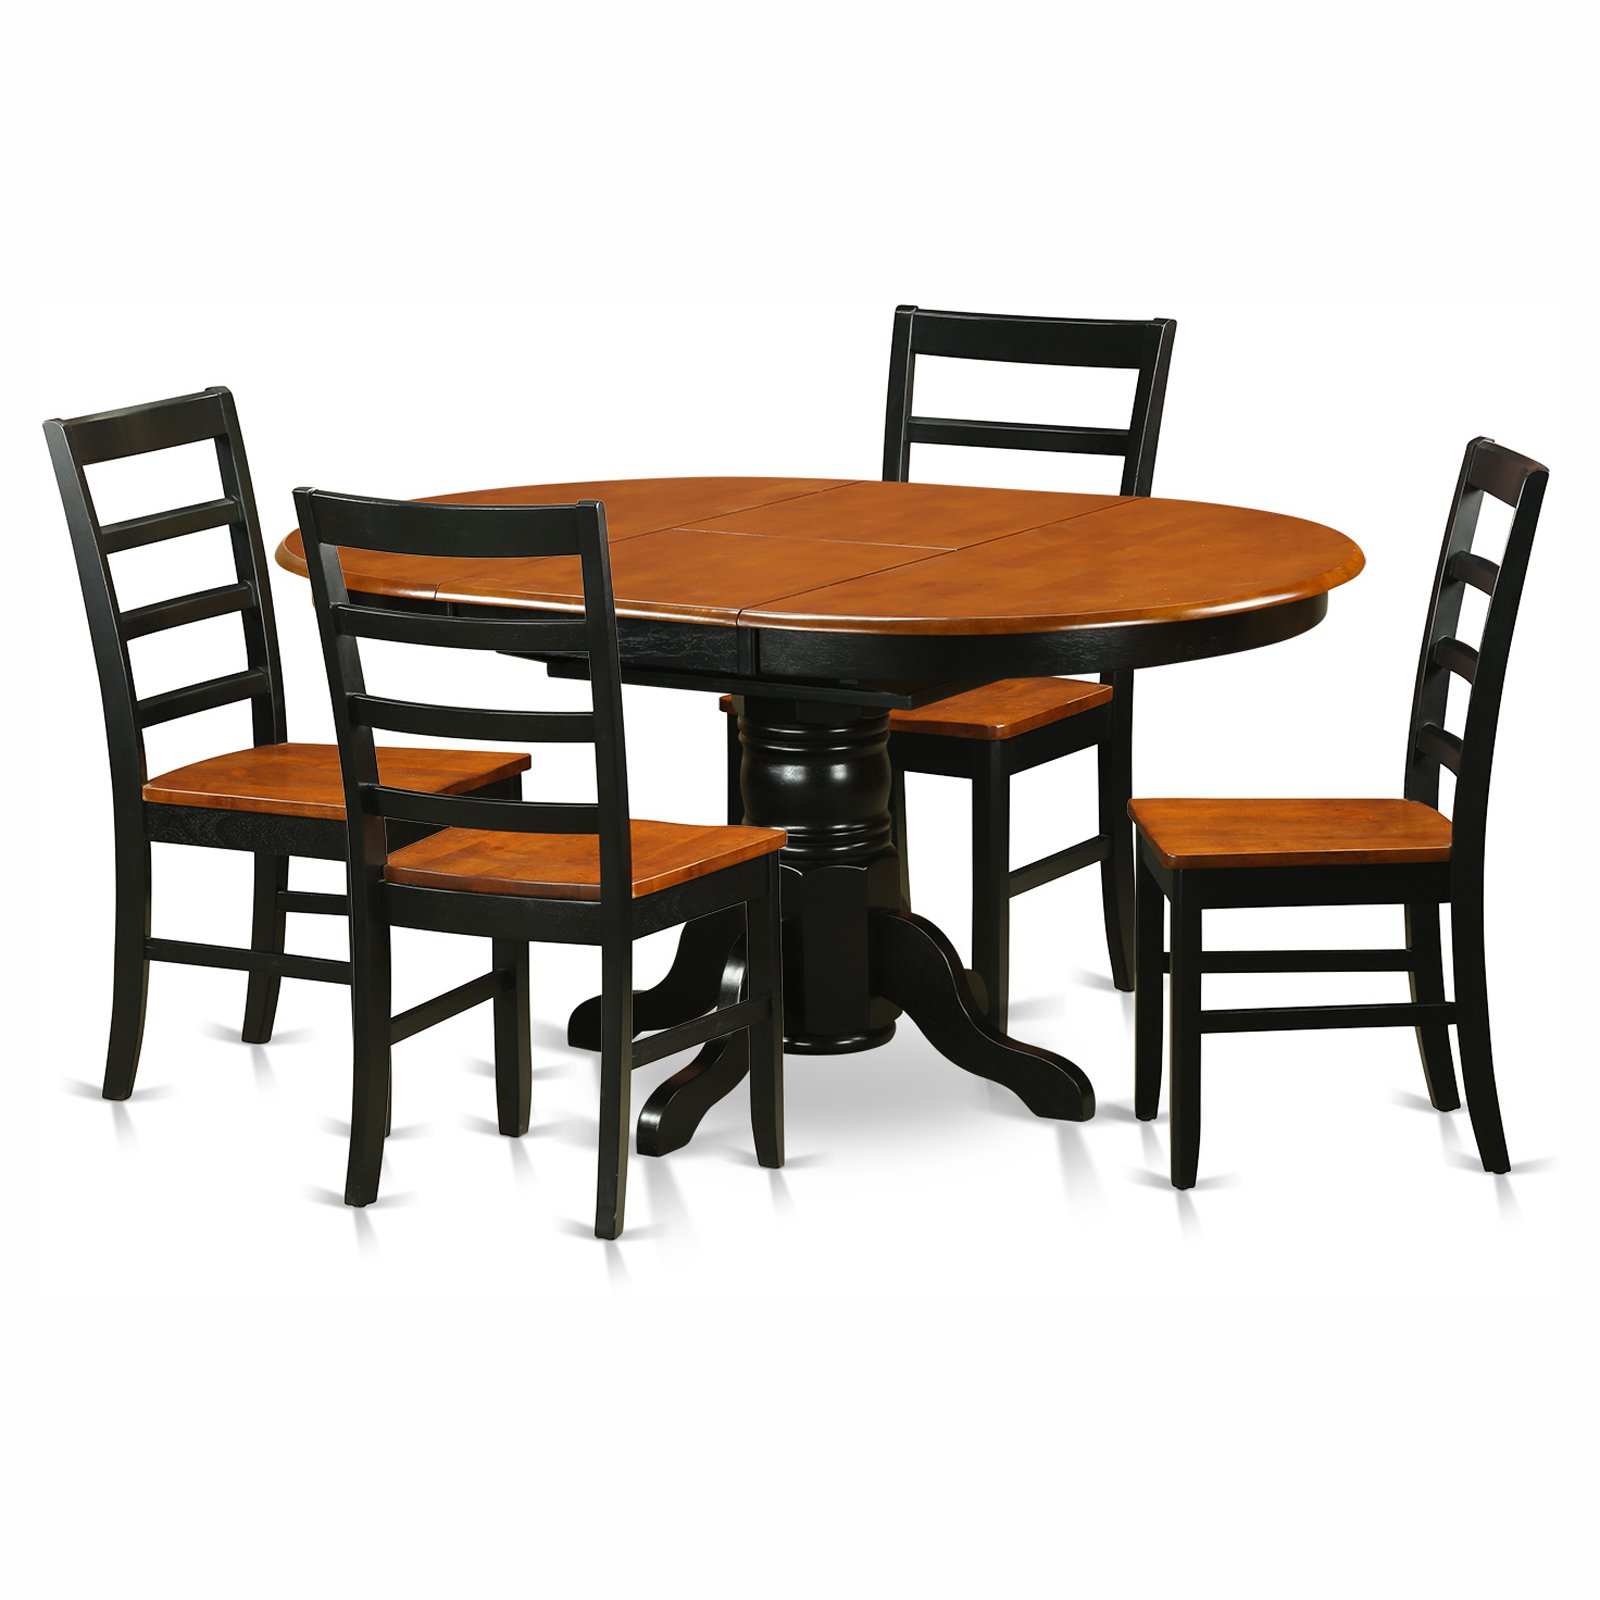 Avon 5 Piece Pedestal Oval Dining Table Set With Parfait With Regard To Best And Newest Servin 43'' Pedestal Dining Tables (View 4 of 20)